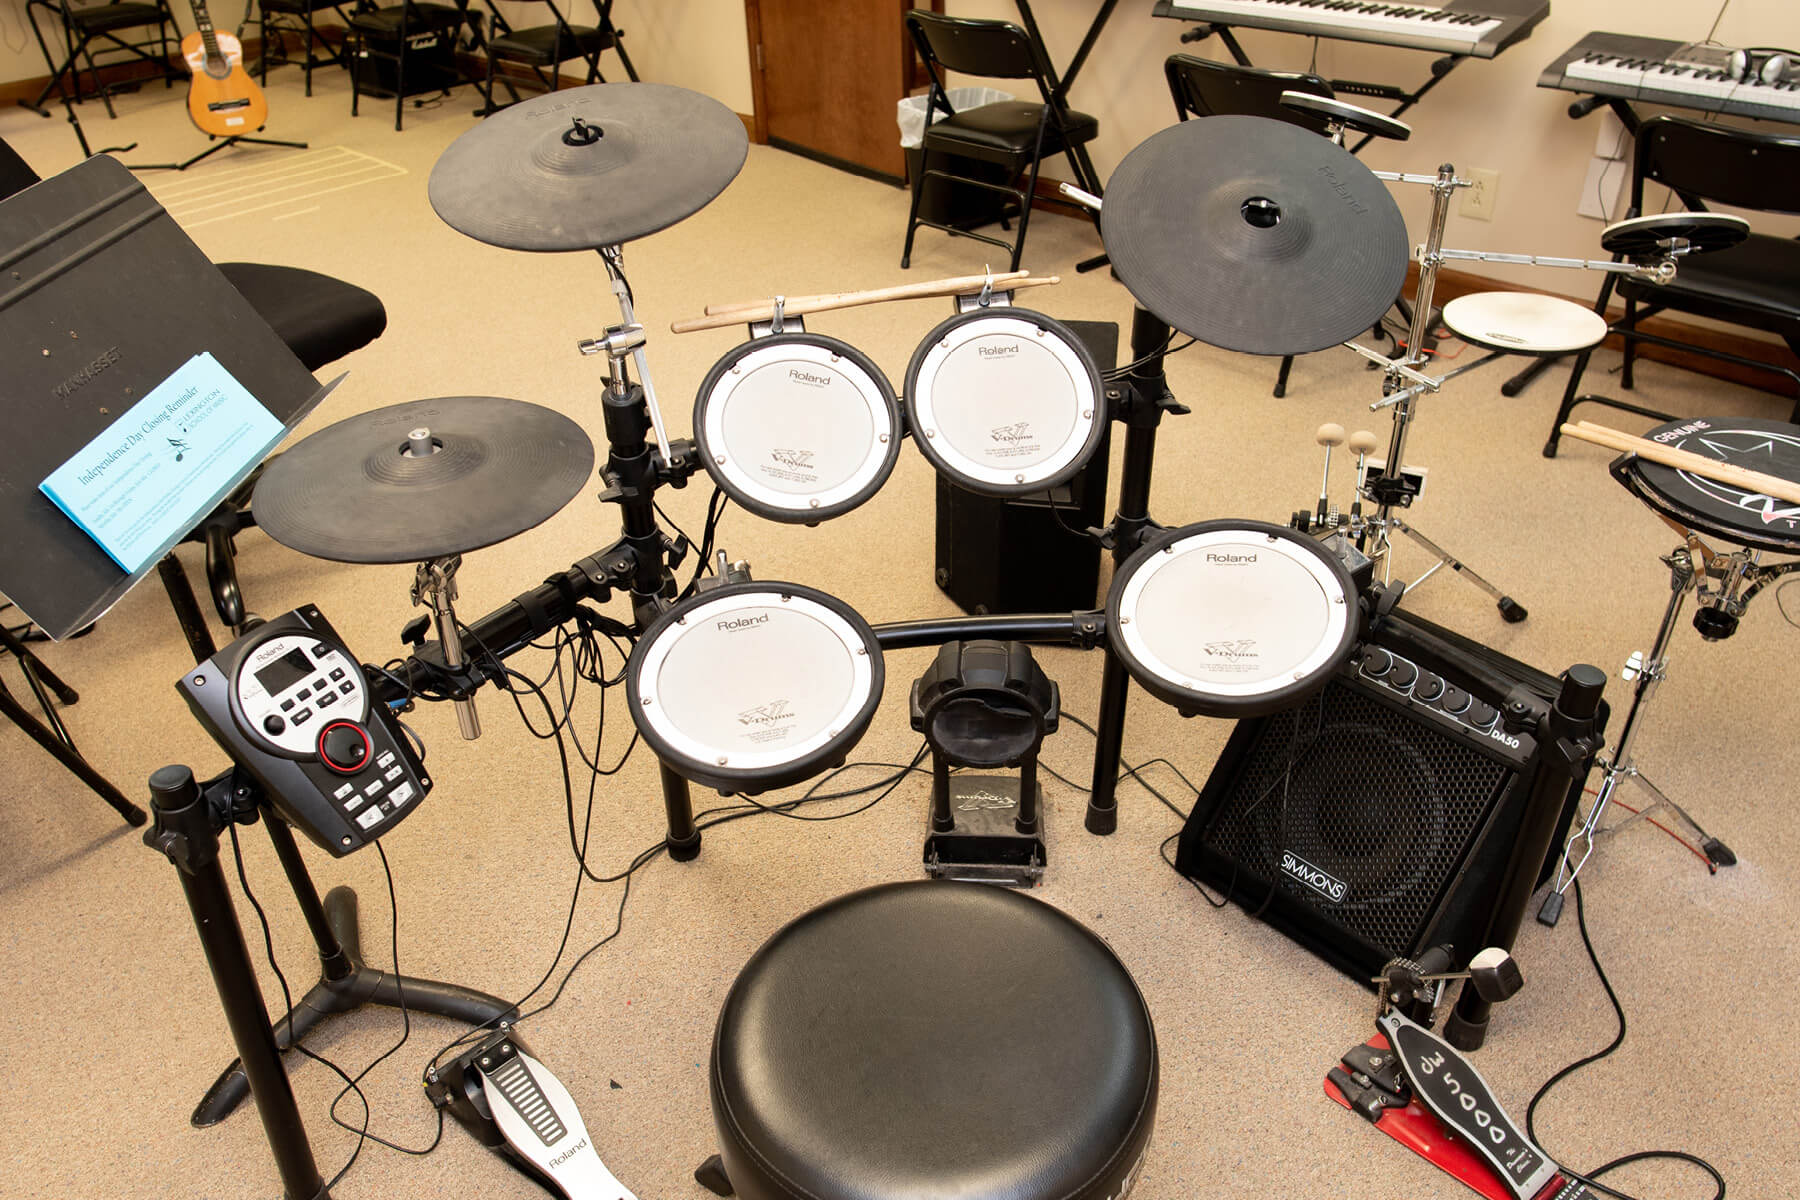 Lexington School of Music digital drum kit available for drum lessons.